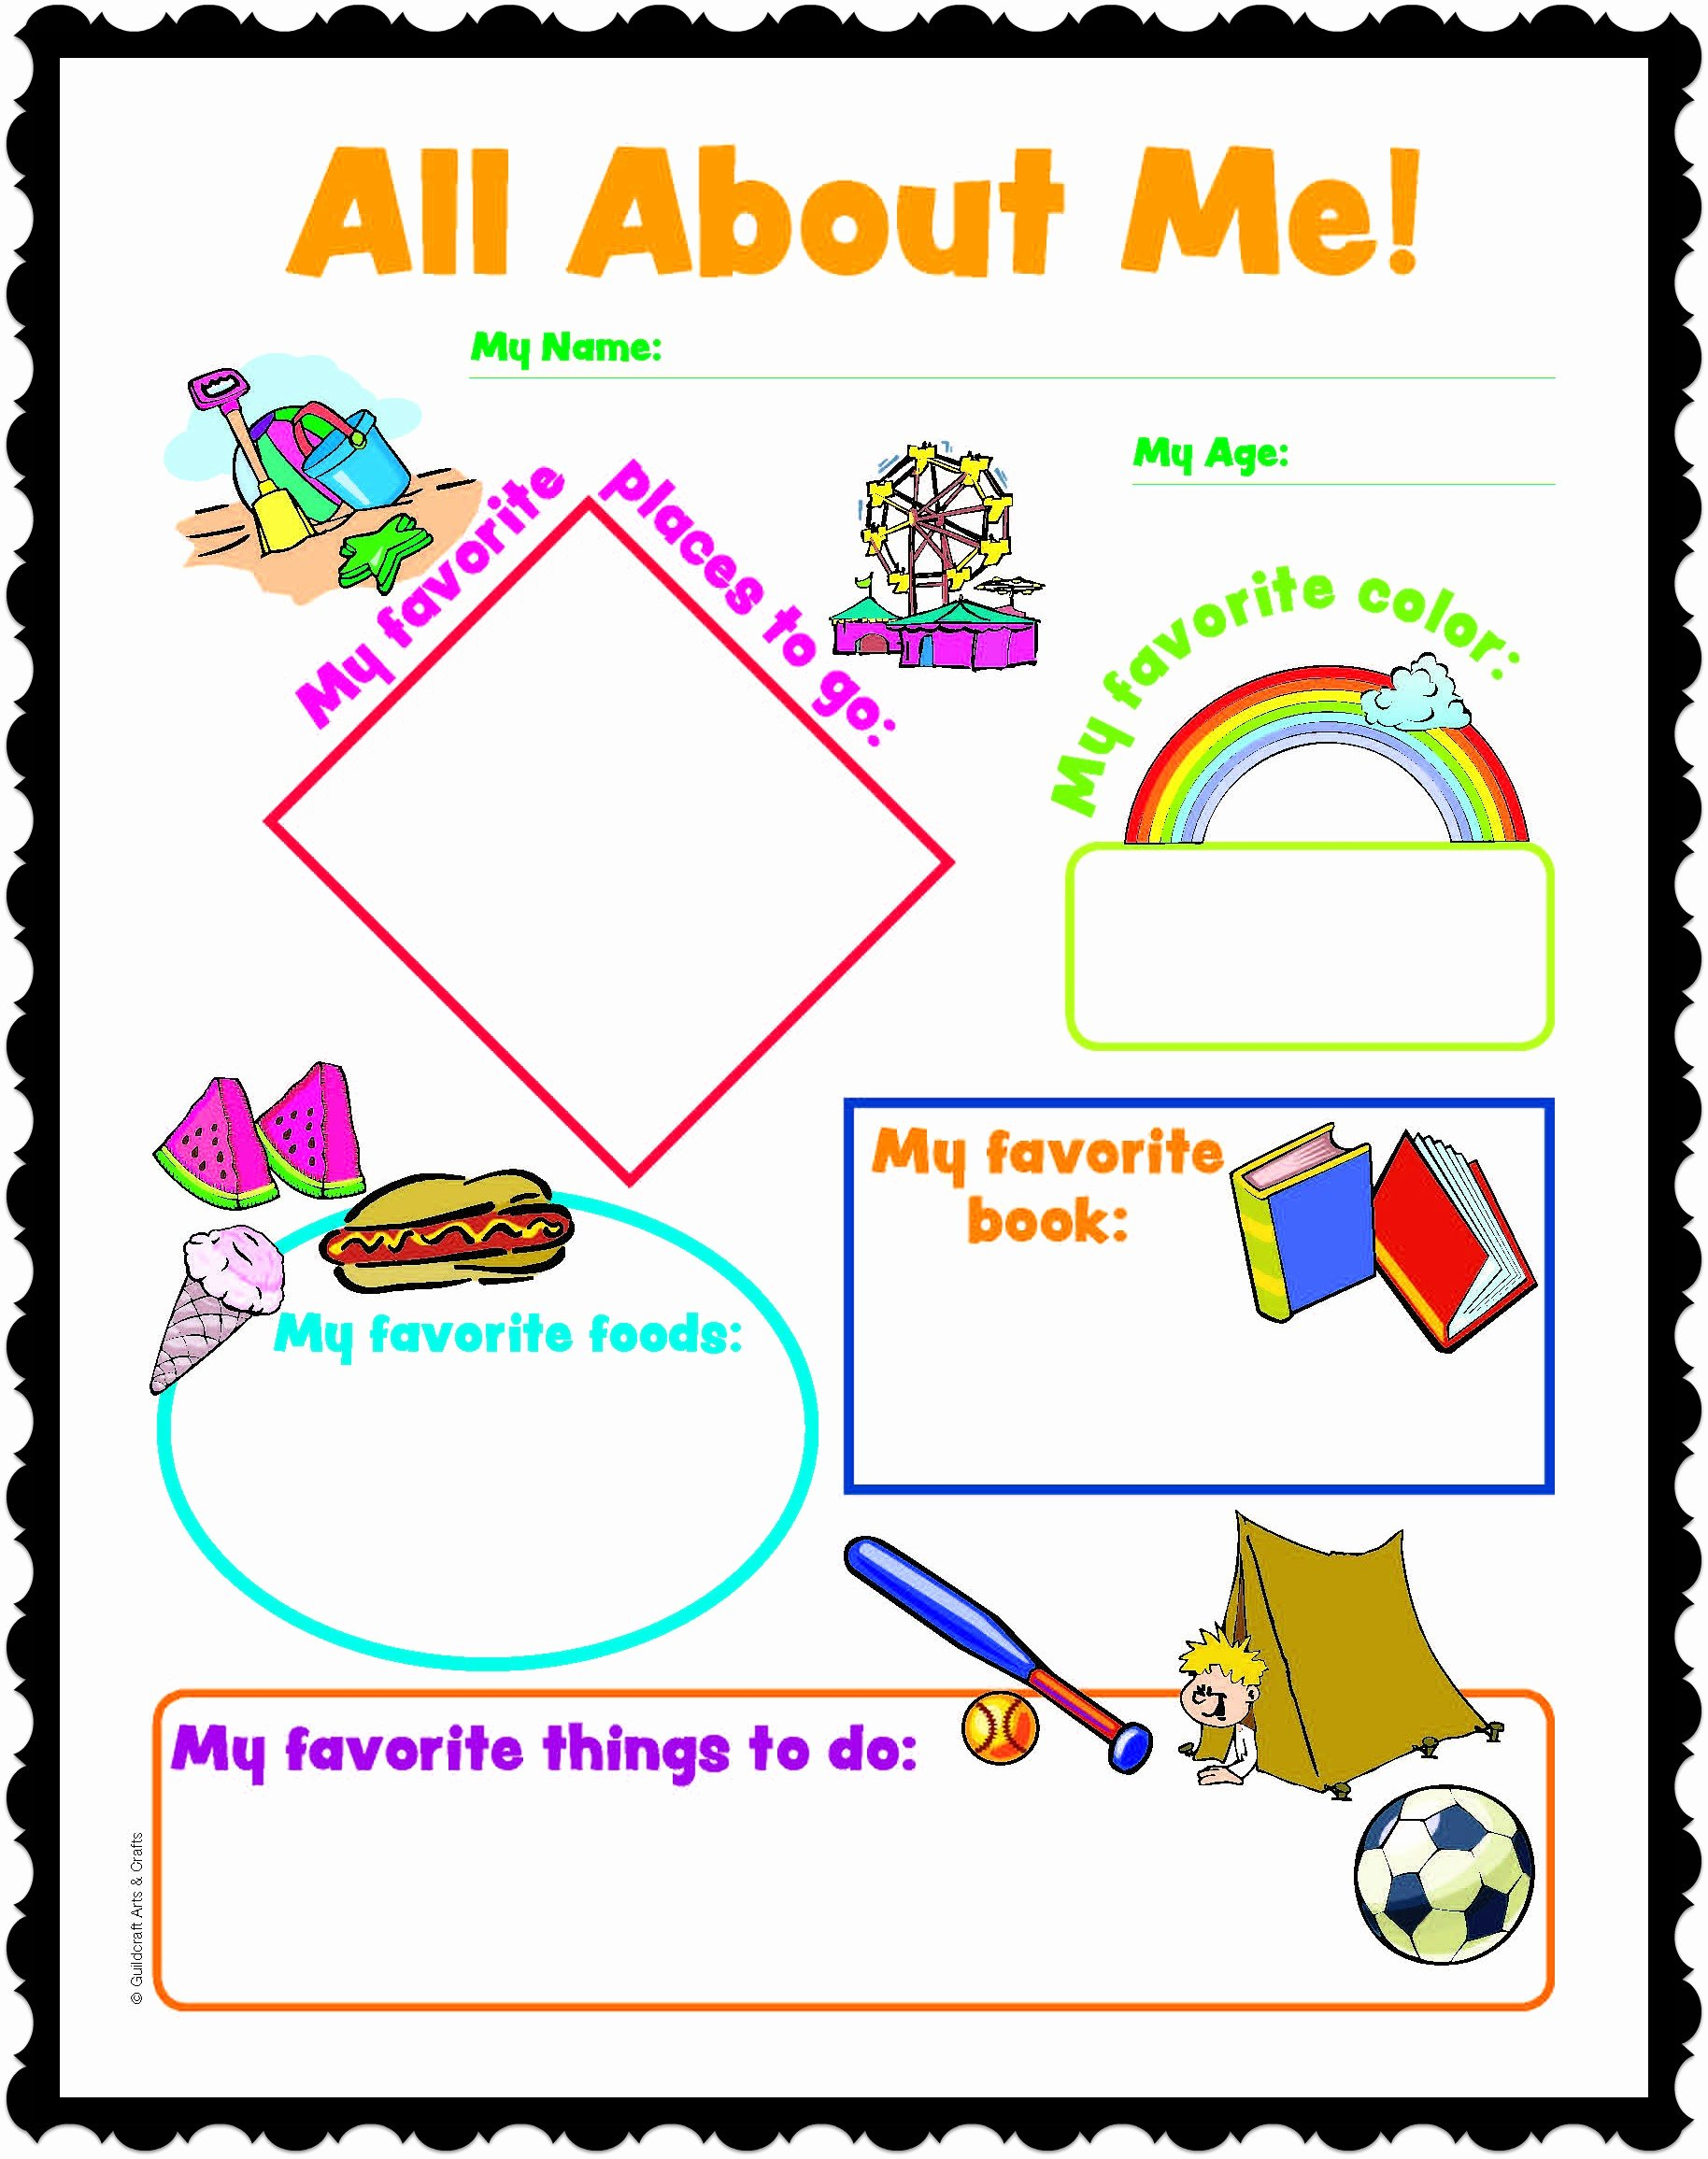 All About Me Worksheet Pdf Elegant All About Me Worksheetstake the Pen